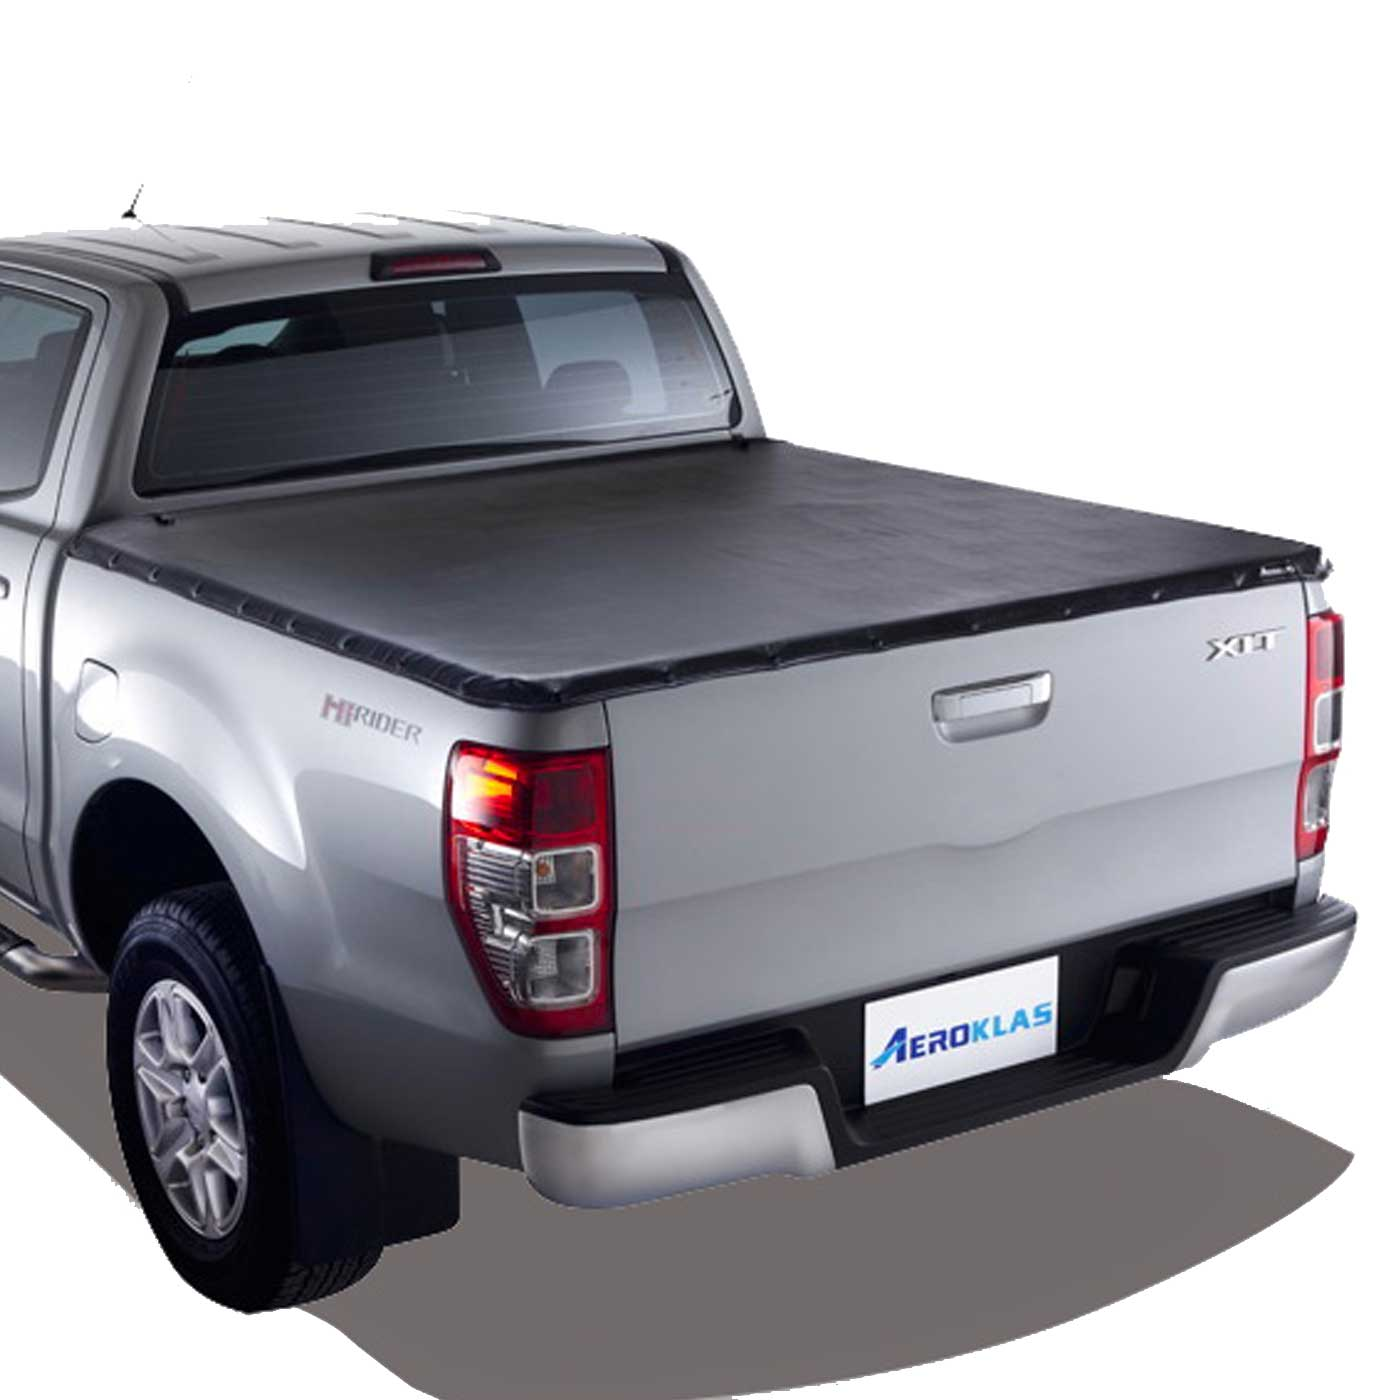 Aeroklas Snap and Clip für Ford Ranger Ext ab 2015